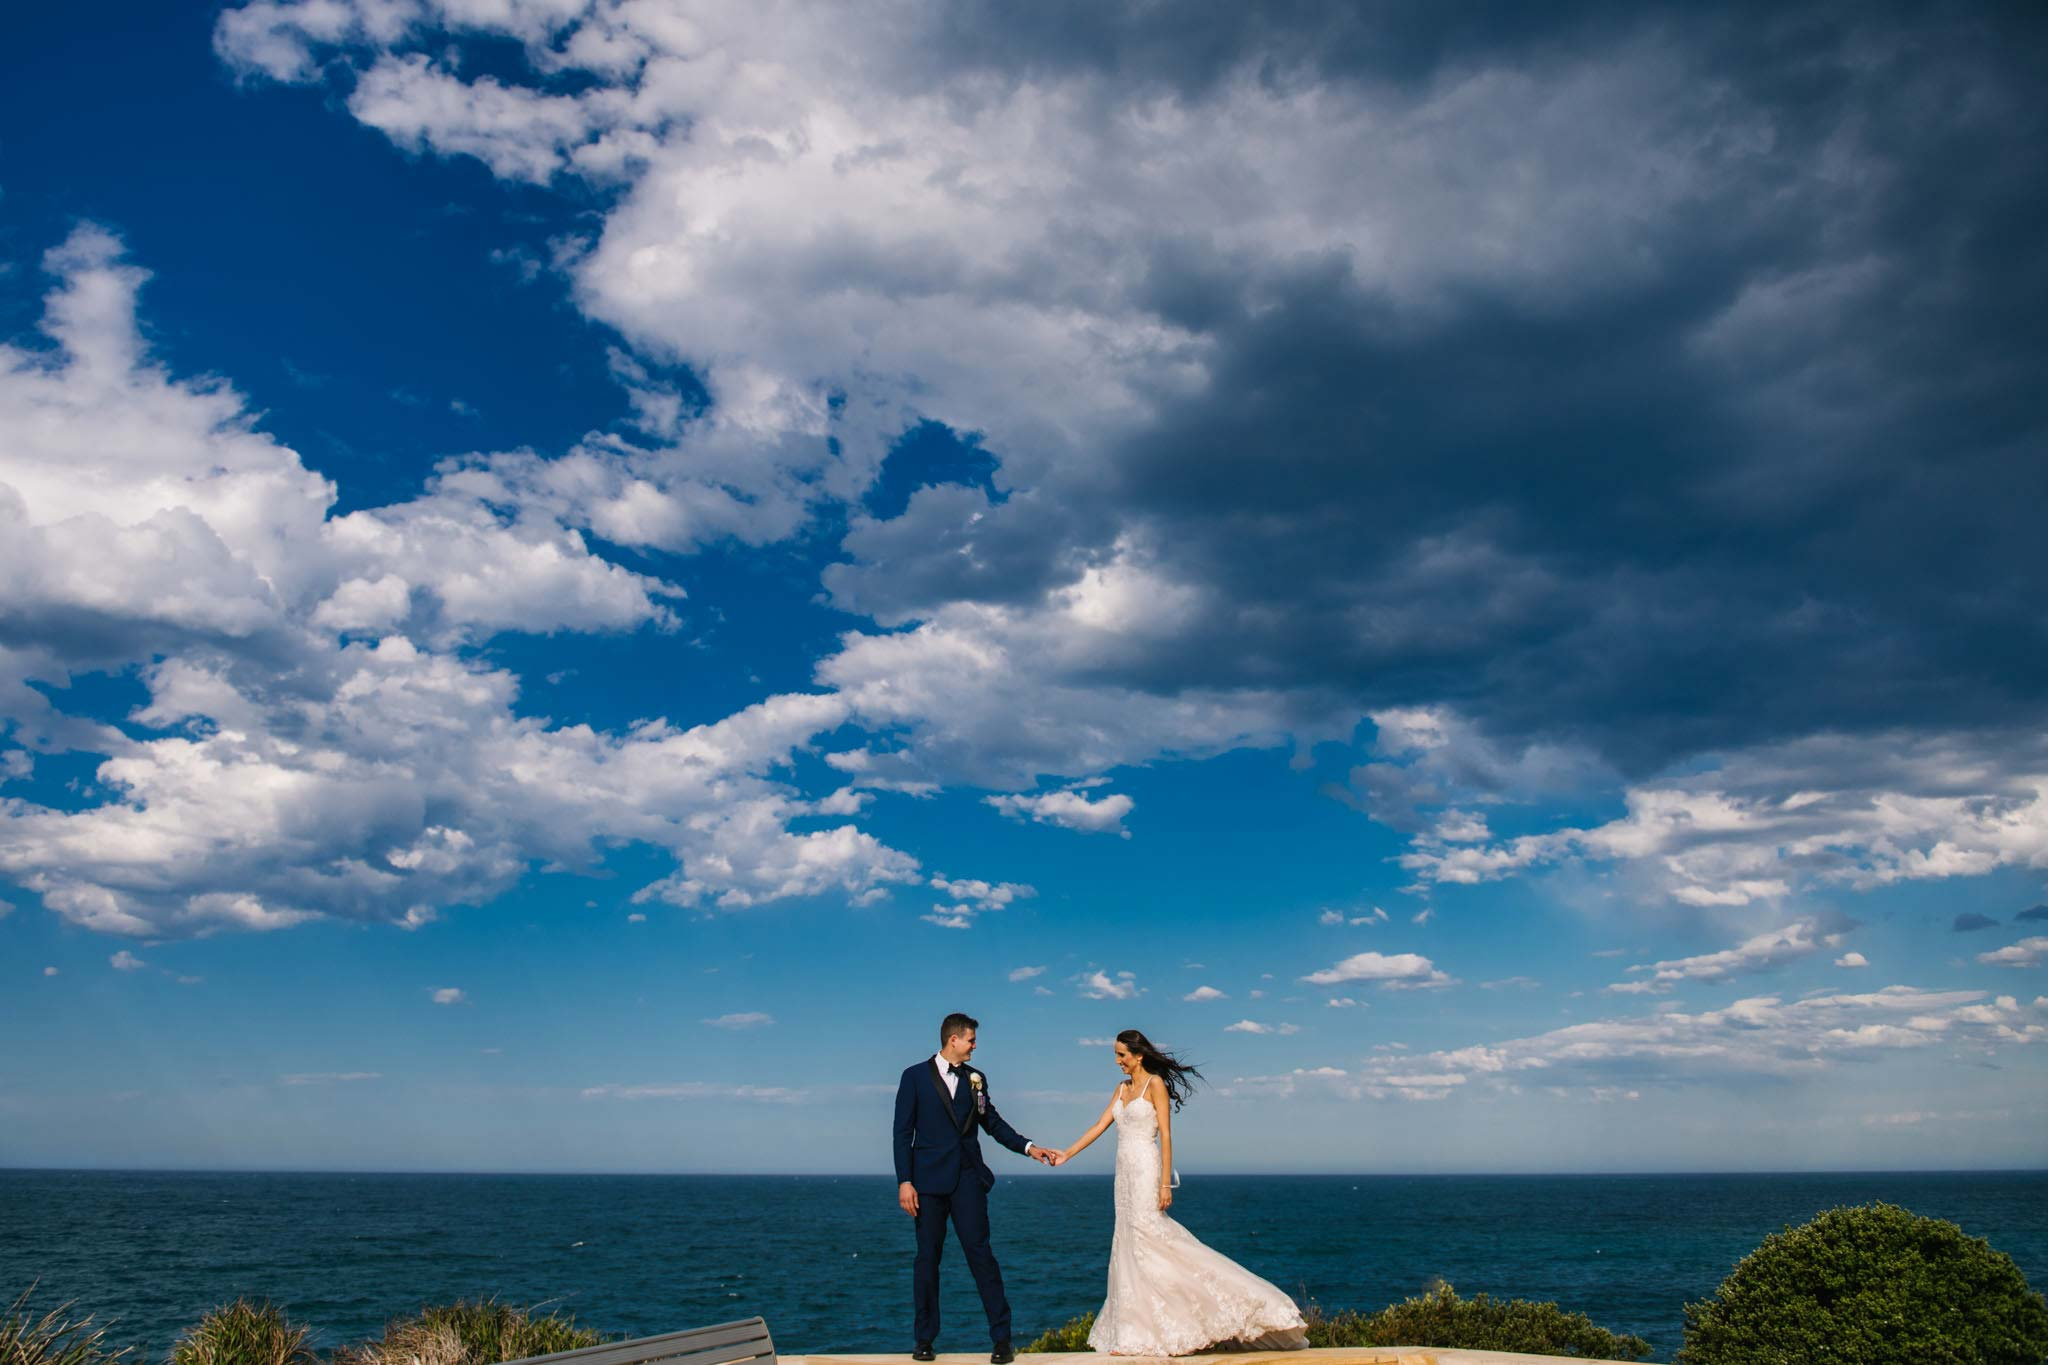 Beautiful view of the ocean at Freshwater headland with newlyweds walking along stone wall